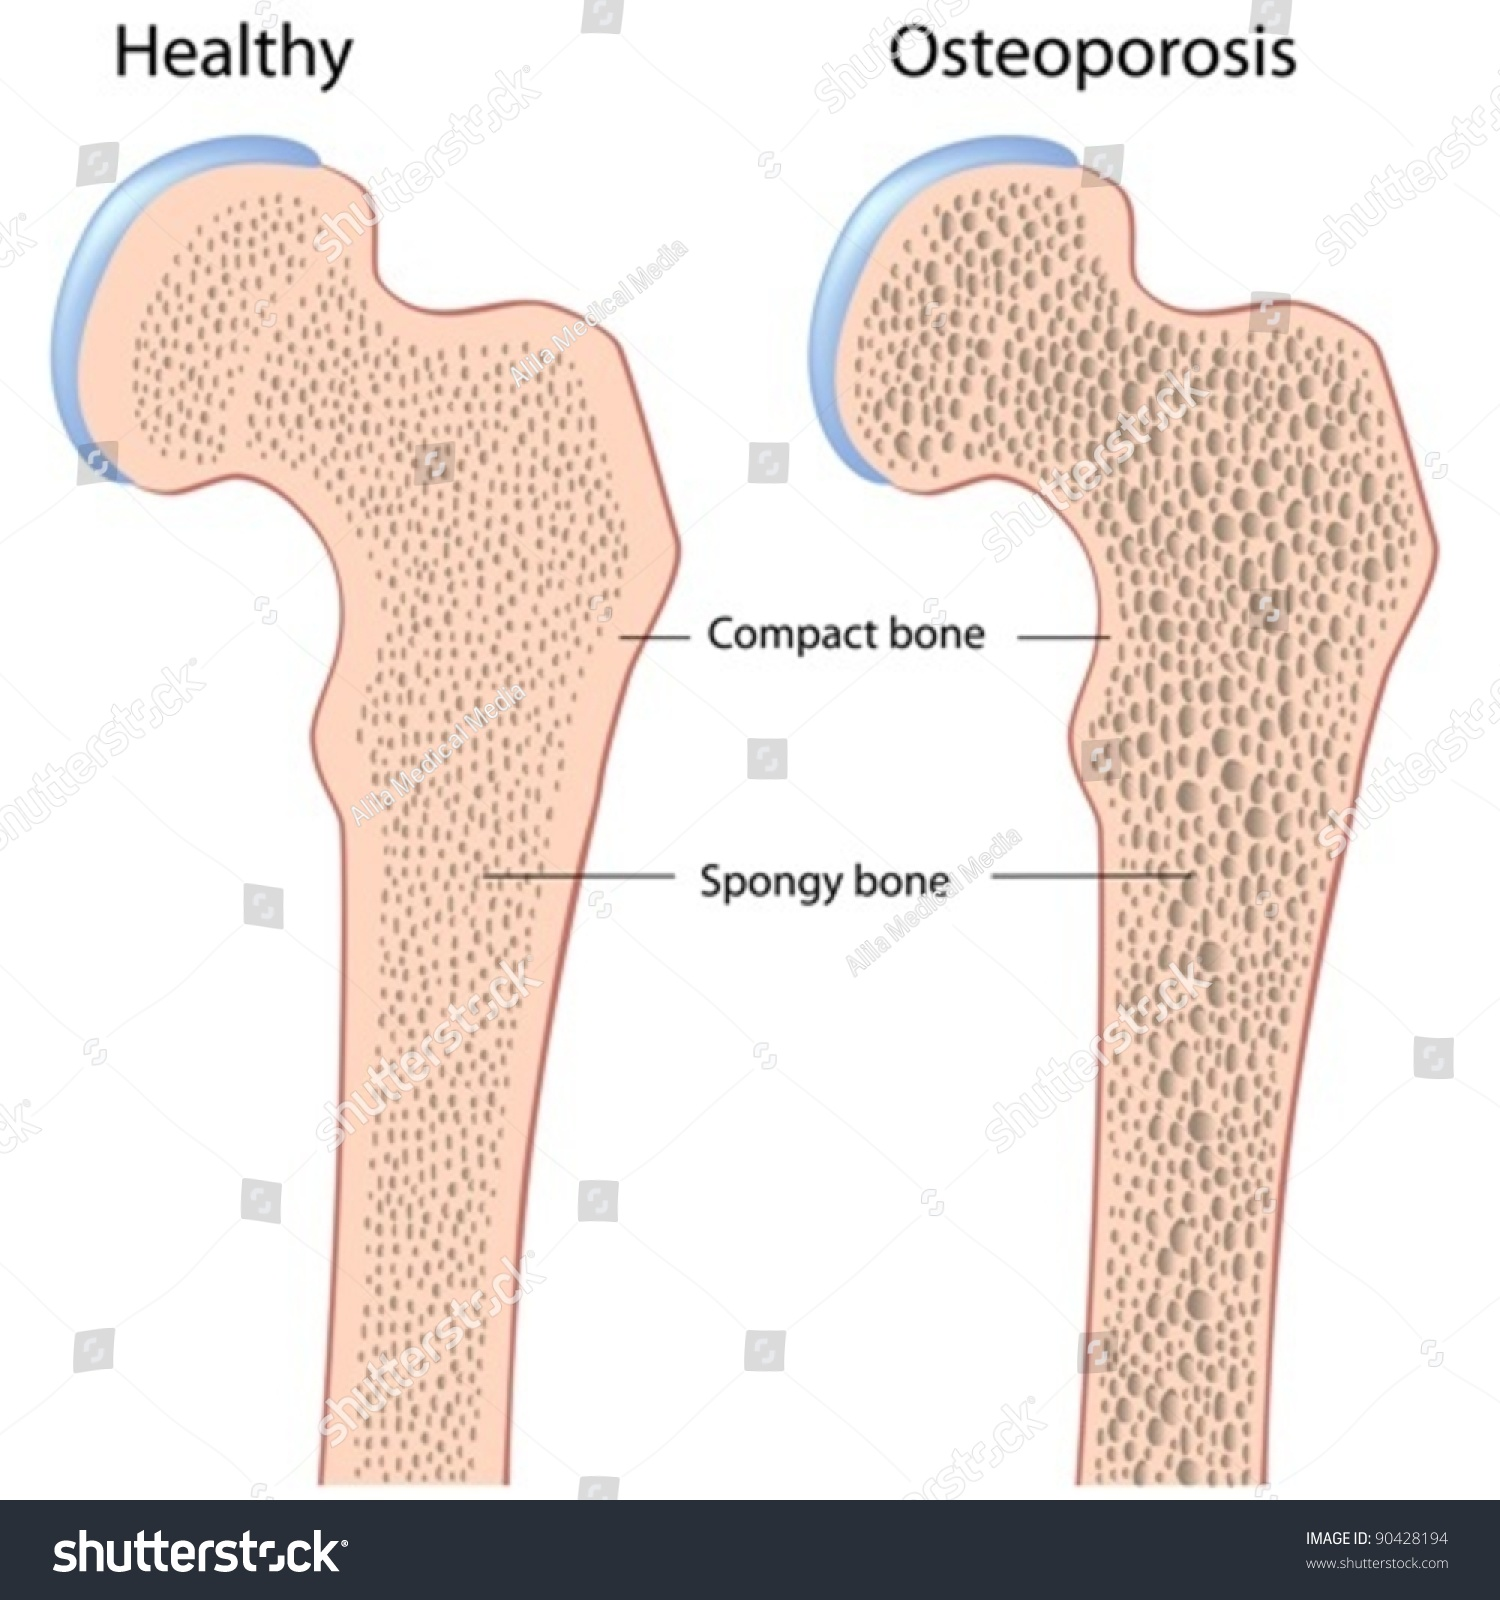 Femur Bone Hip Anatomy Normal Osteoporosis Stock Vector 90428194